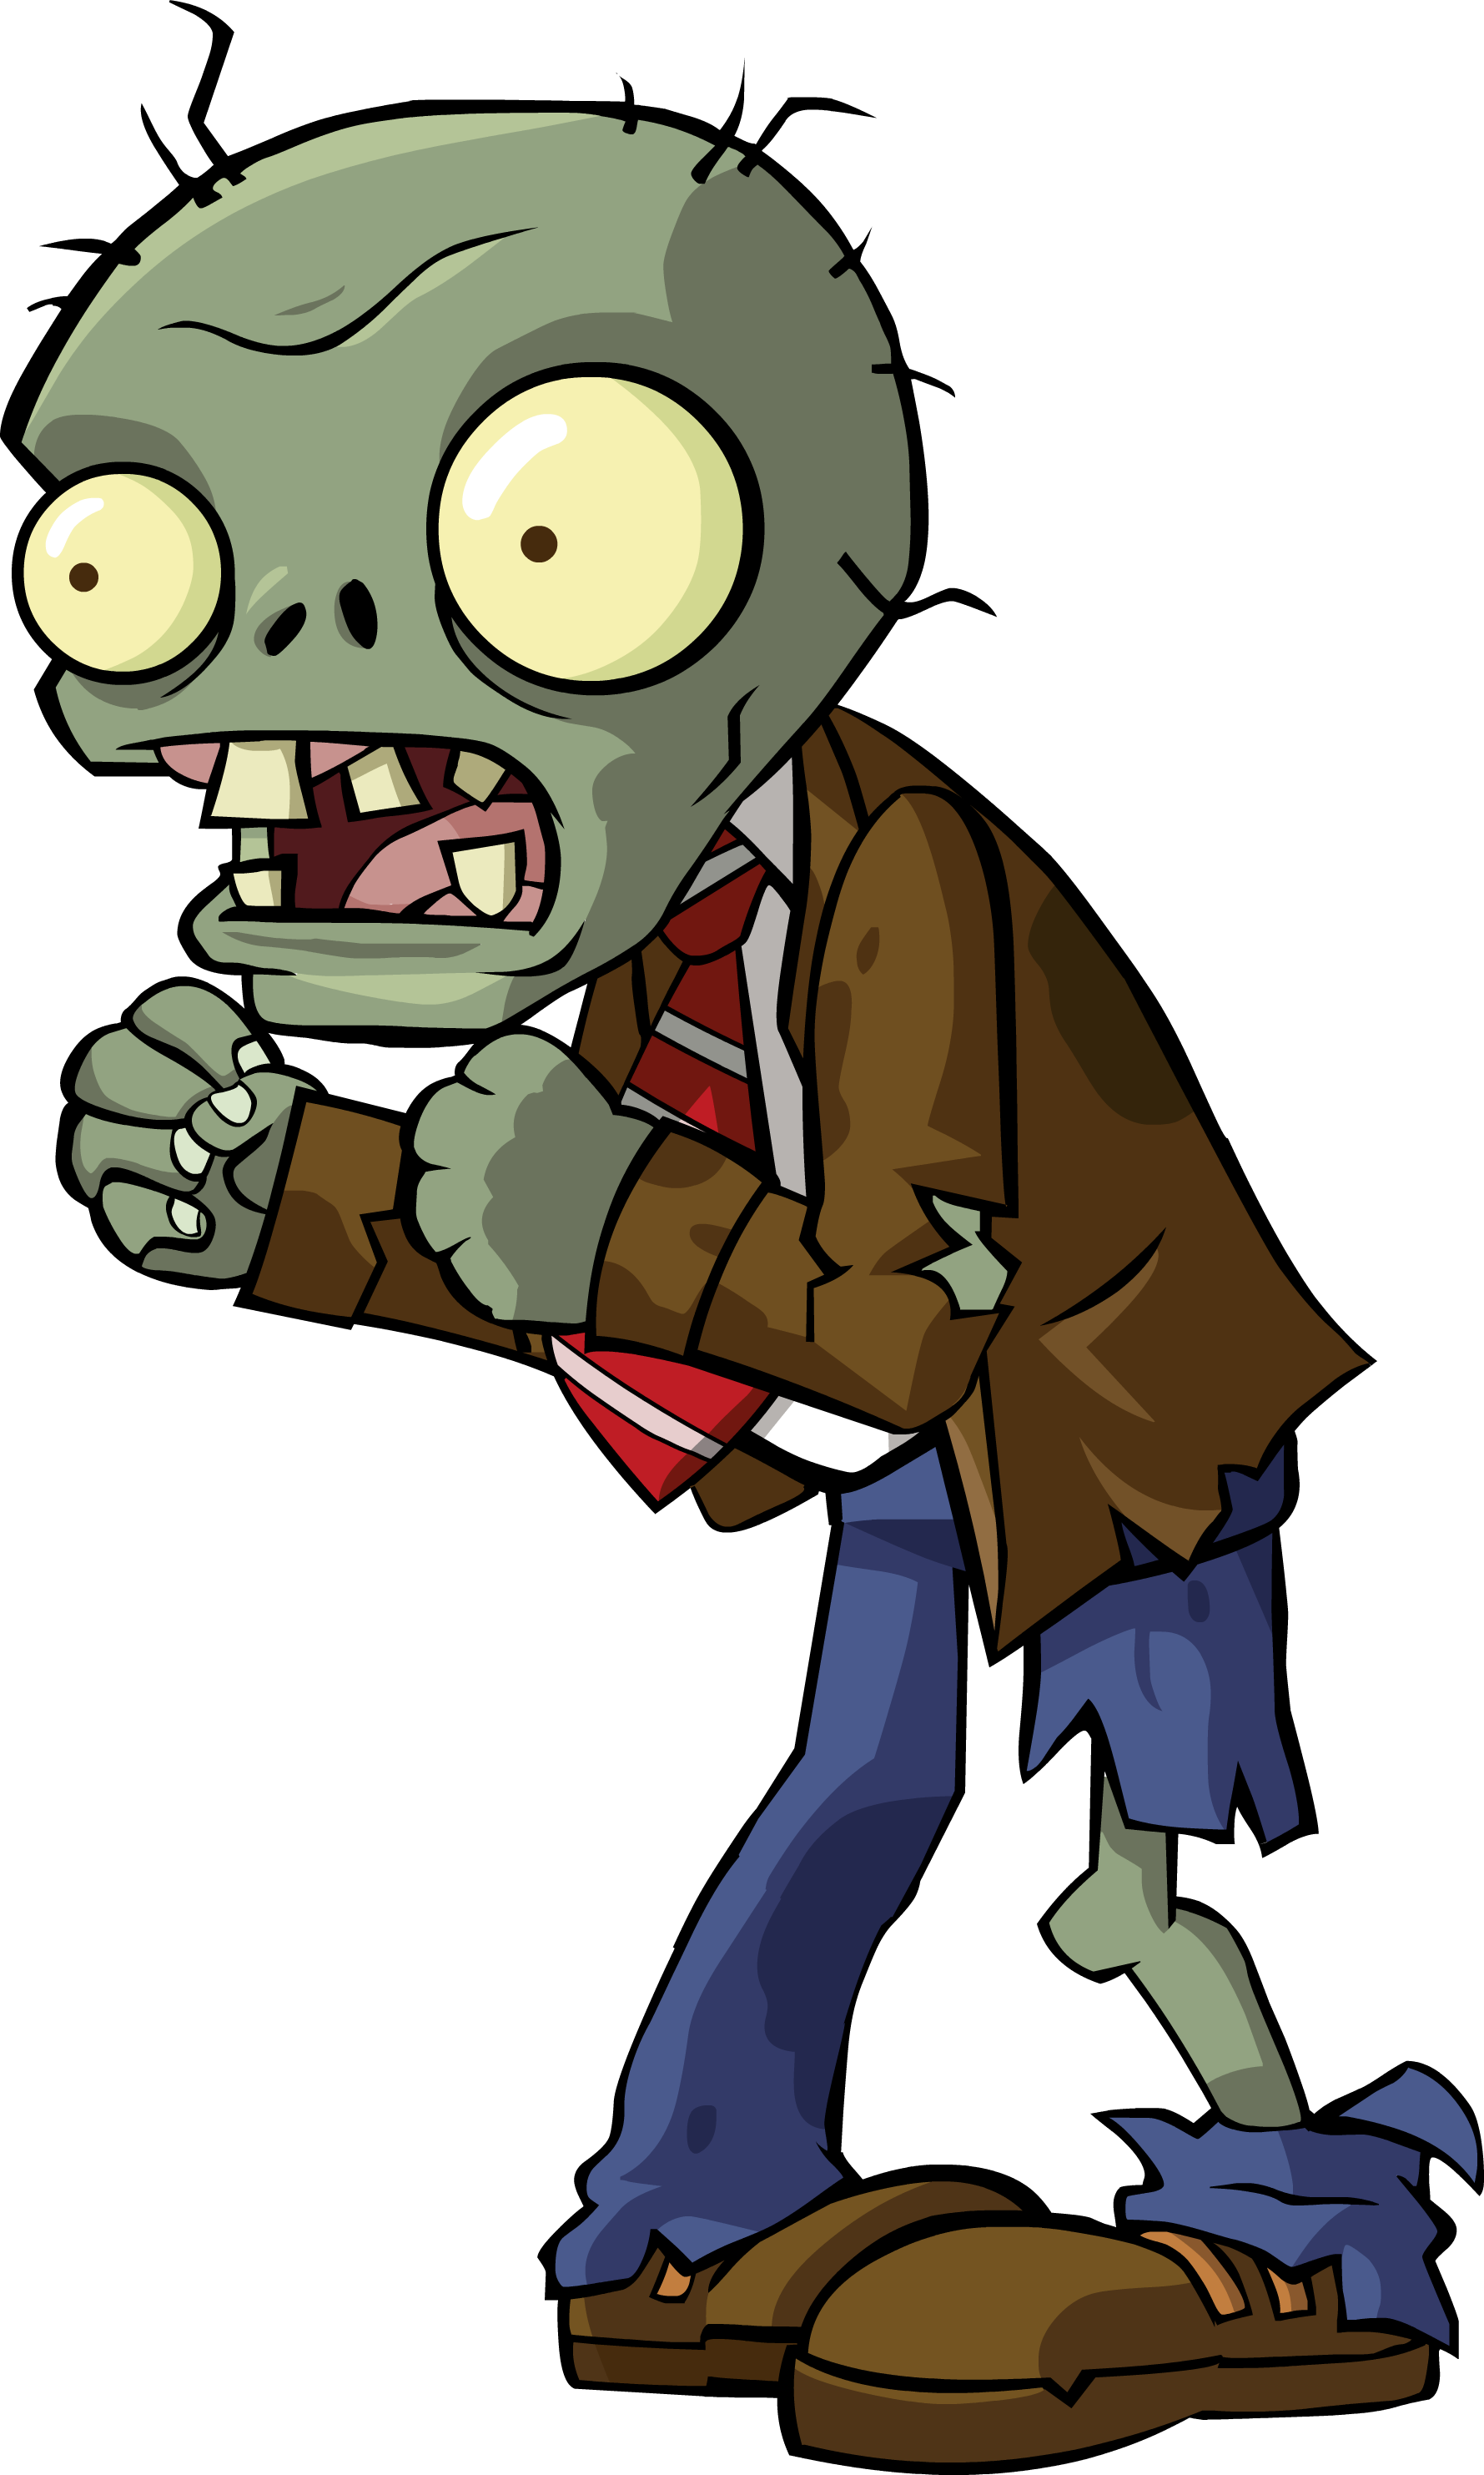 Image fighter png plants. Zombie clipart plant vs zombie